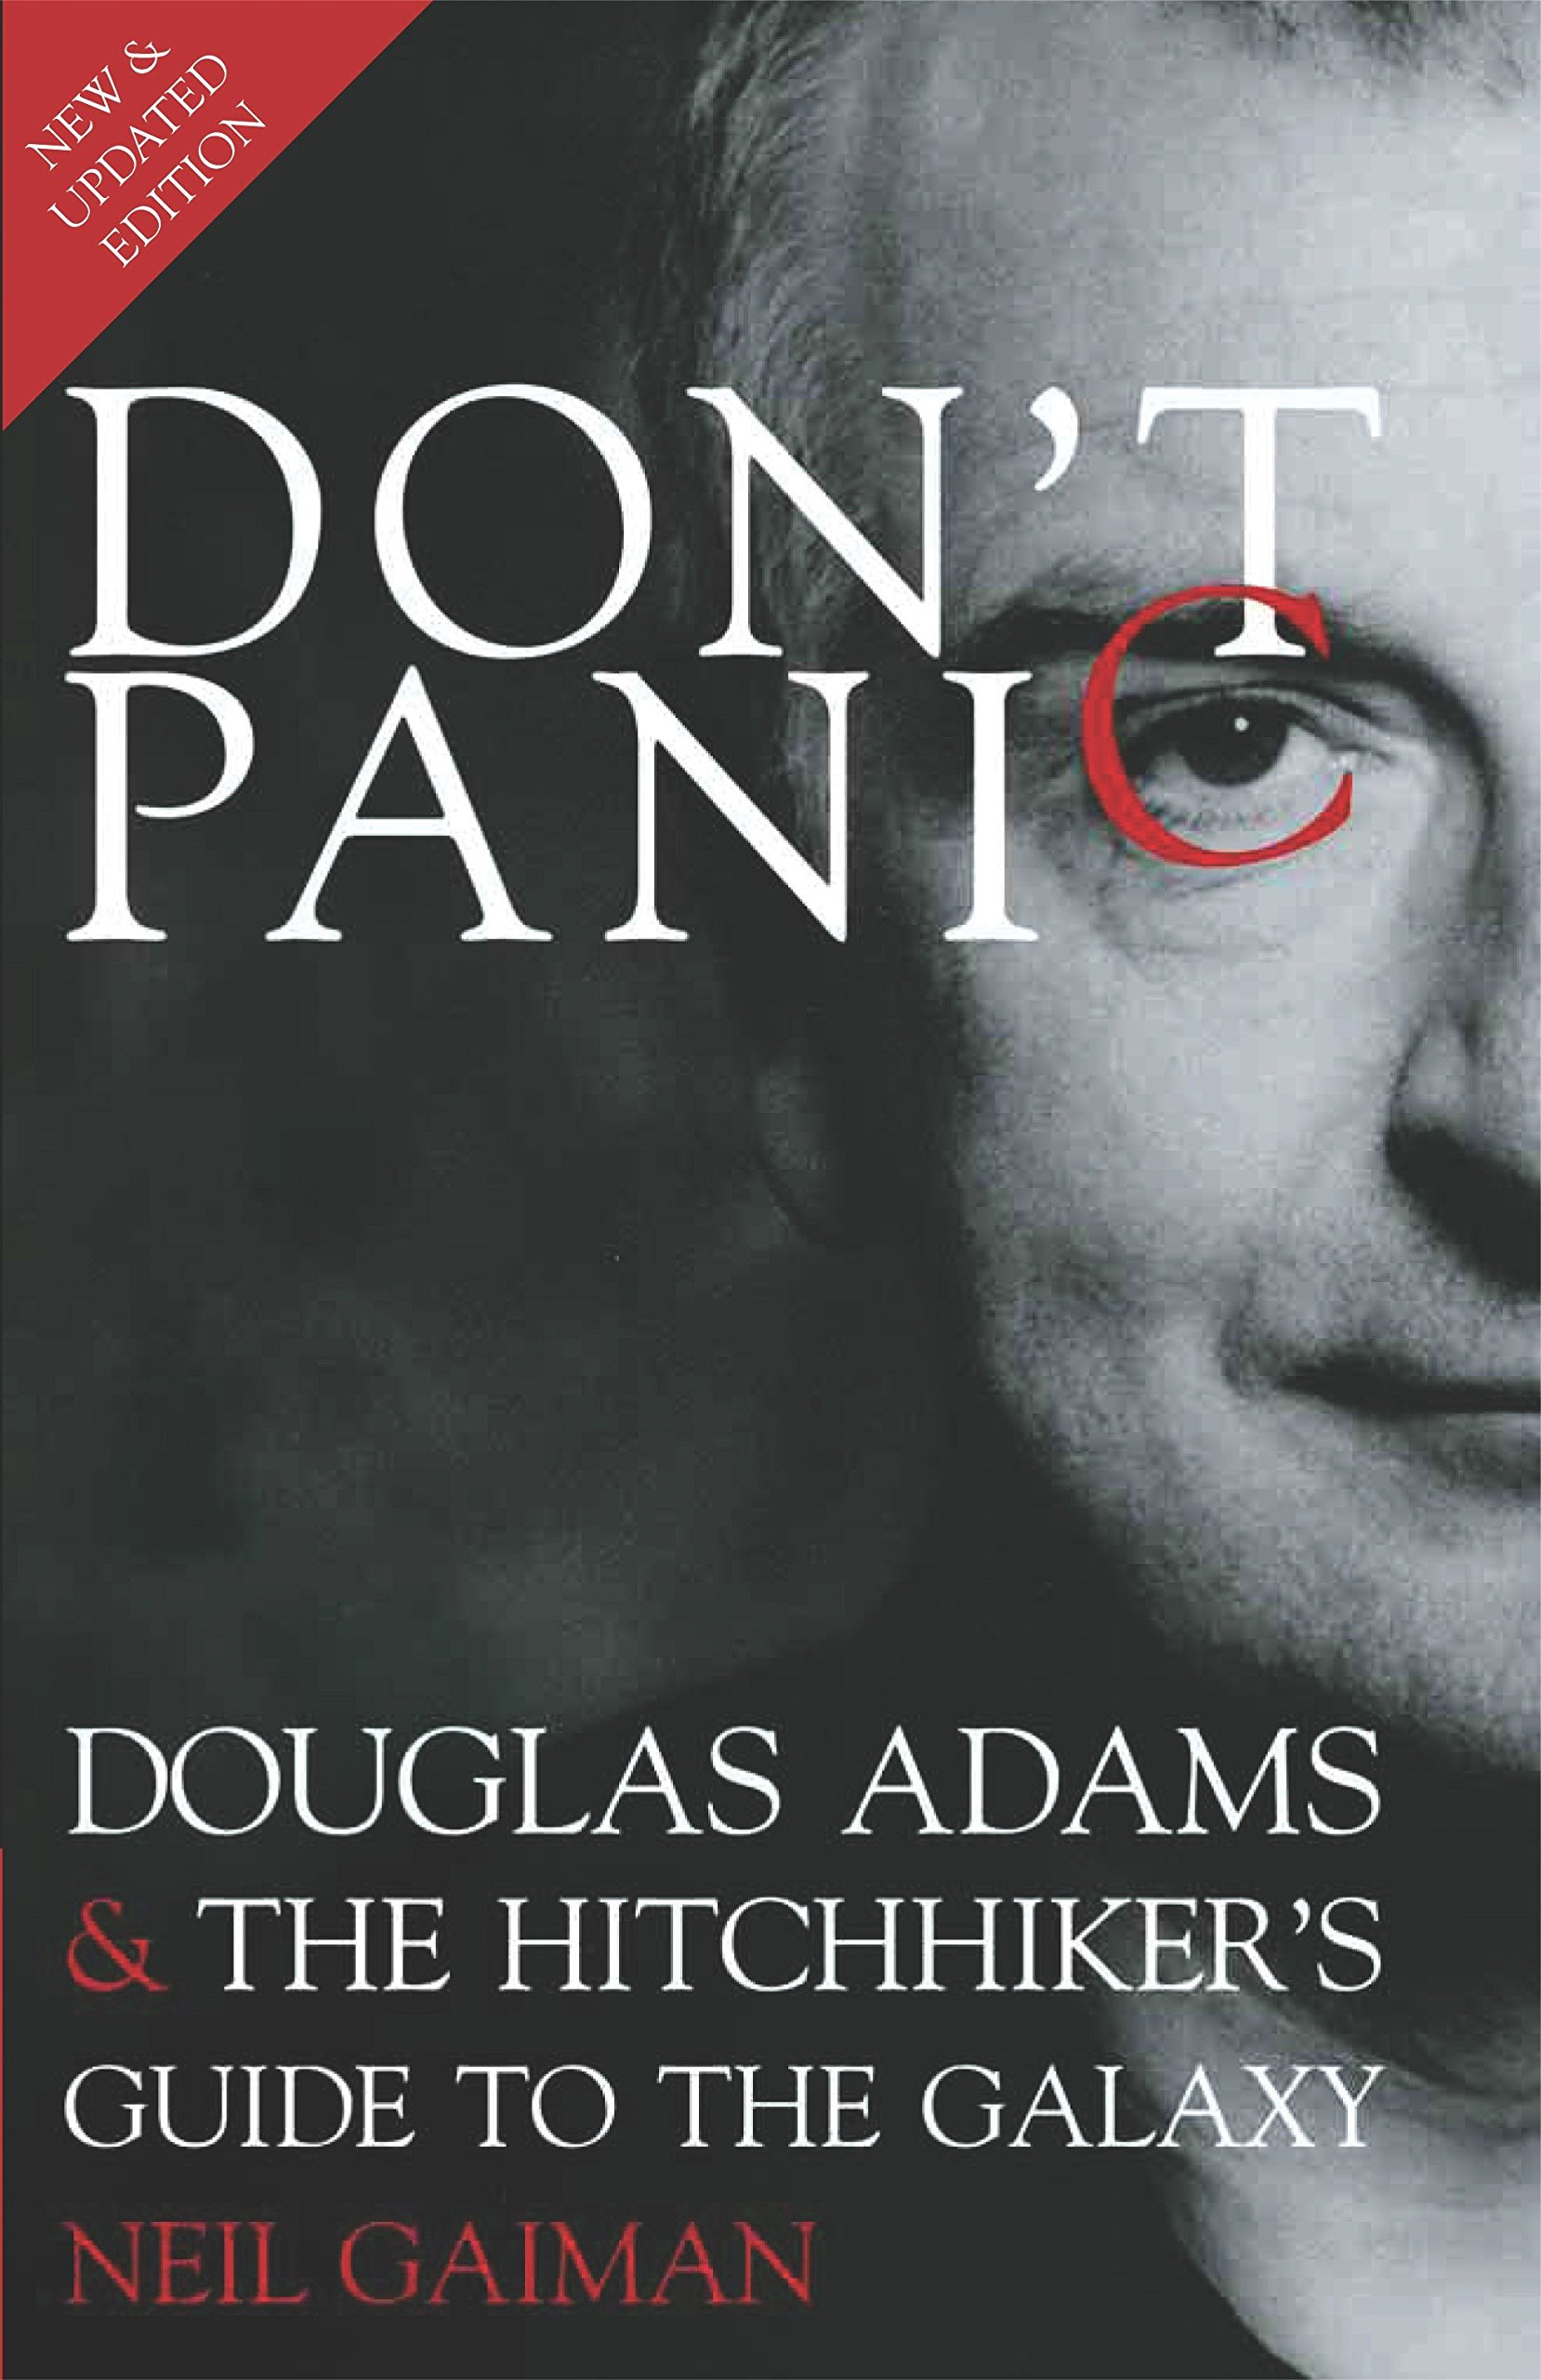 Download Don't Panic: Douglas Adams & The Hitchhiker's Guide to the Galaxy ebook